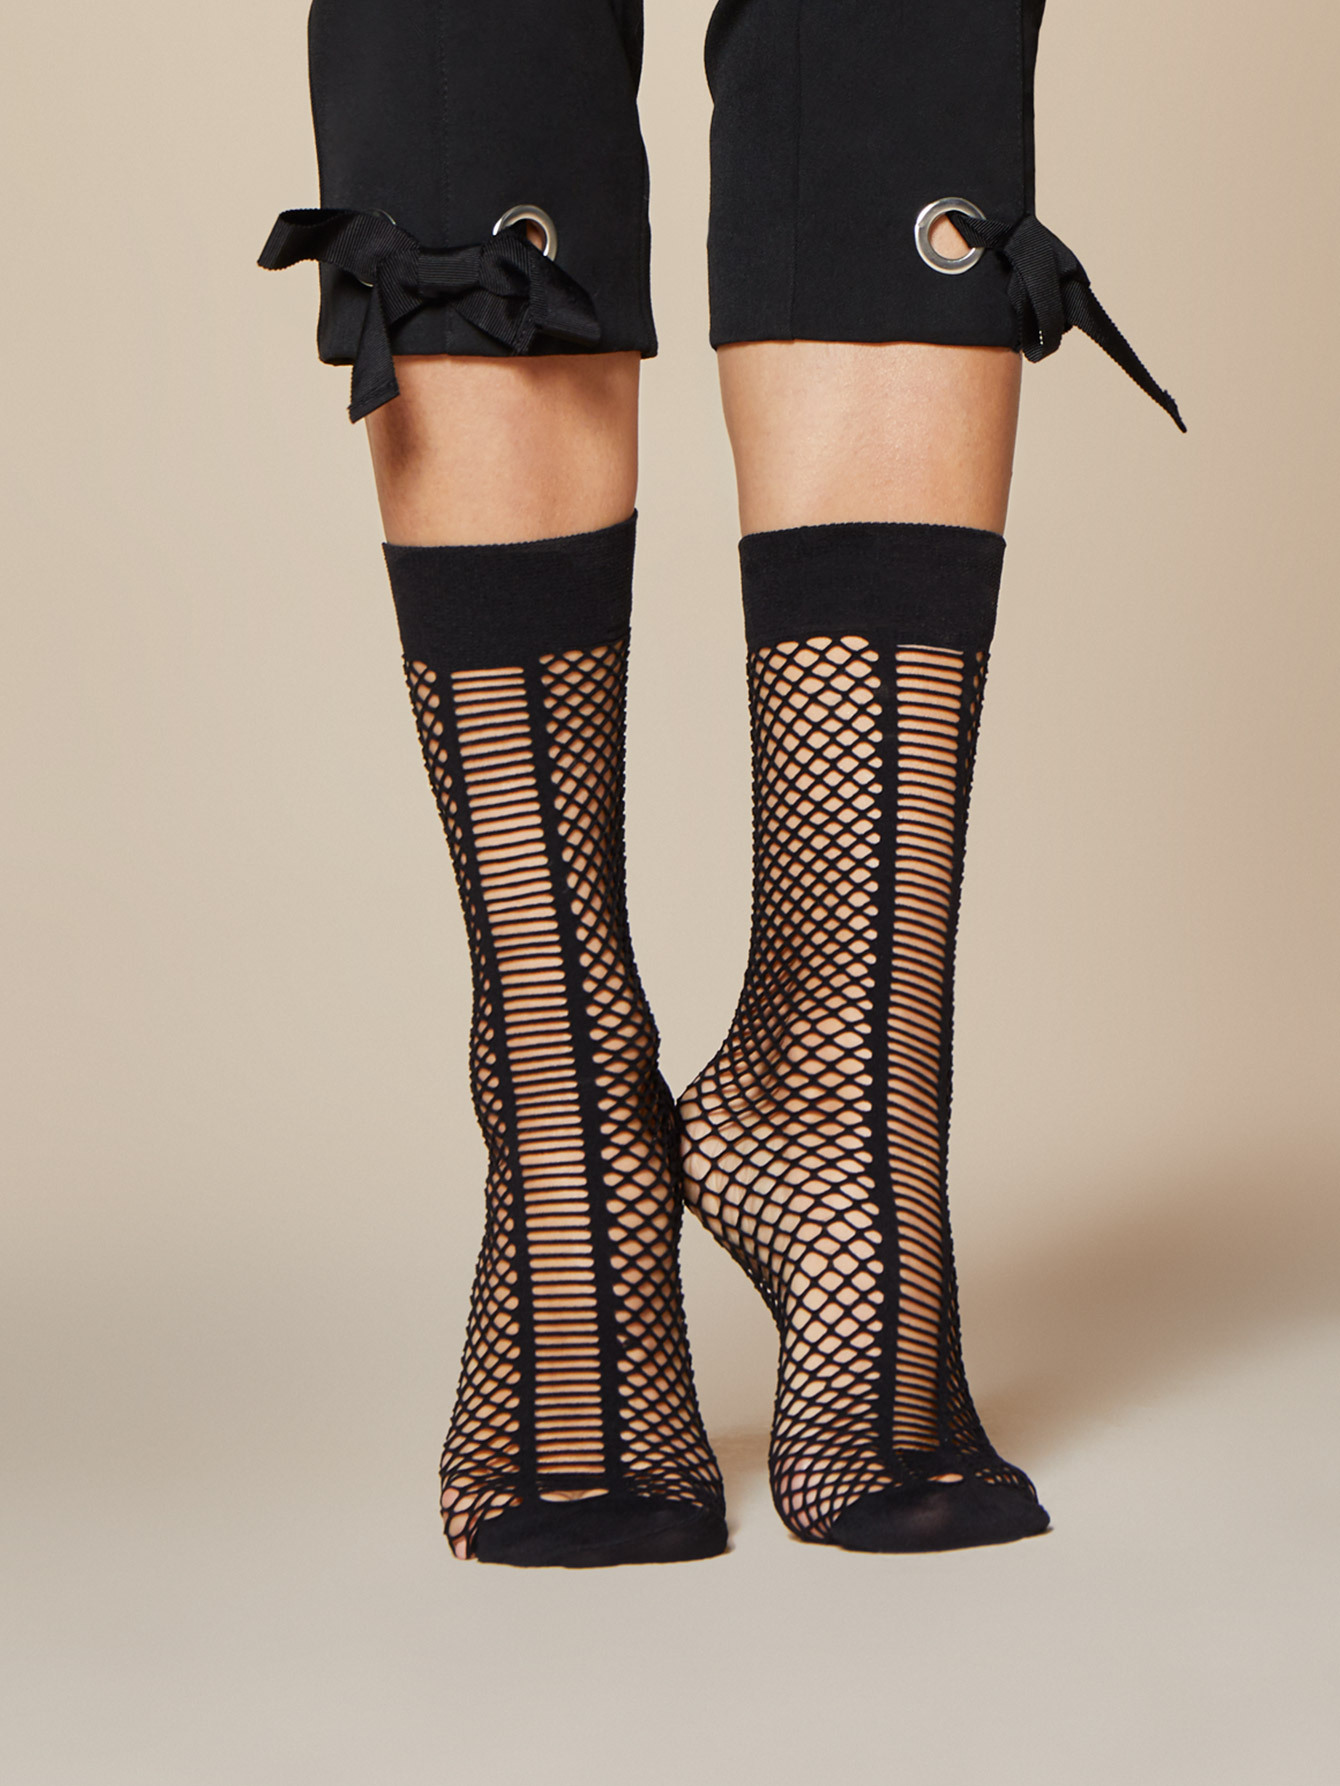 Fiore: Naughty Netted Stretchy Socks FIO_SCALA